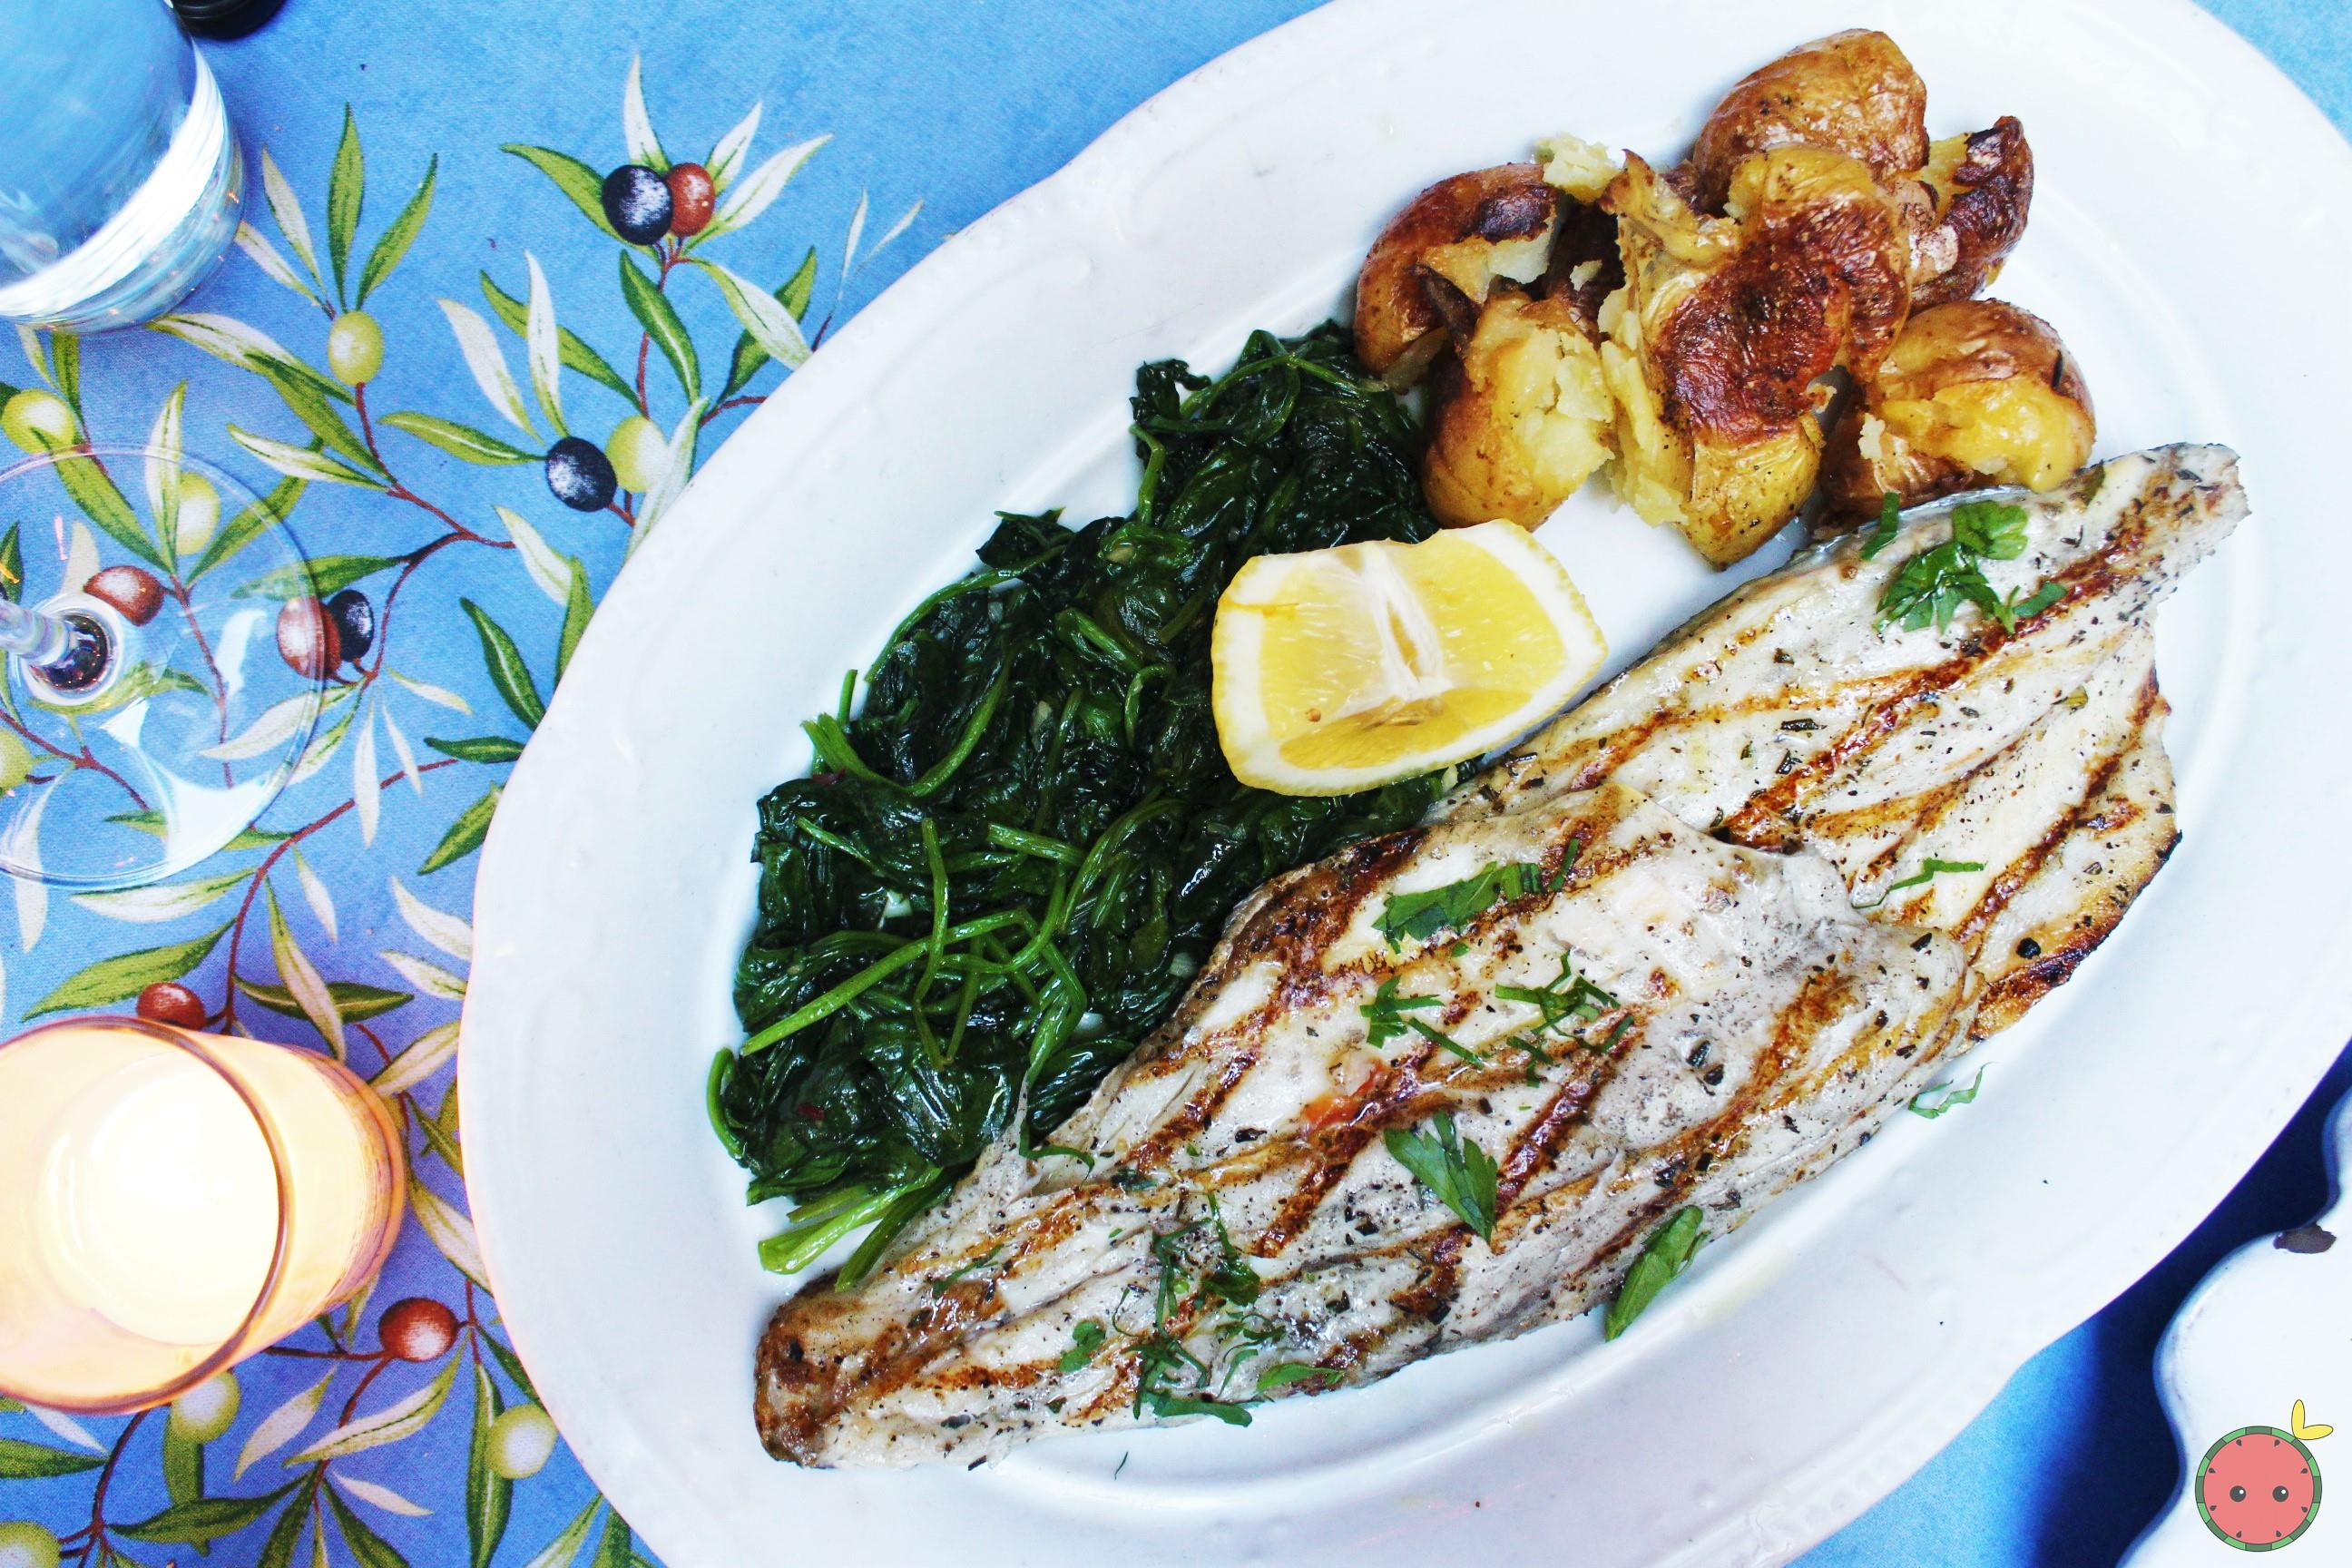 Branzino_alla_Griglia_-_Grilled_Italian_sea_bass_with_sautéed_spinach_and_herb-pressed_potatoes